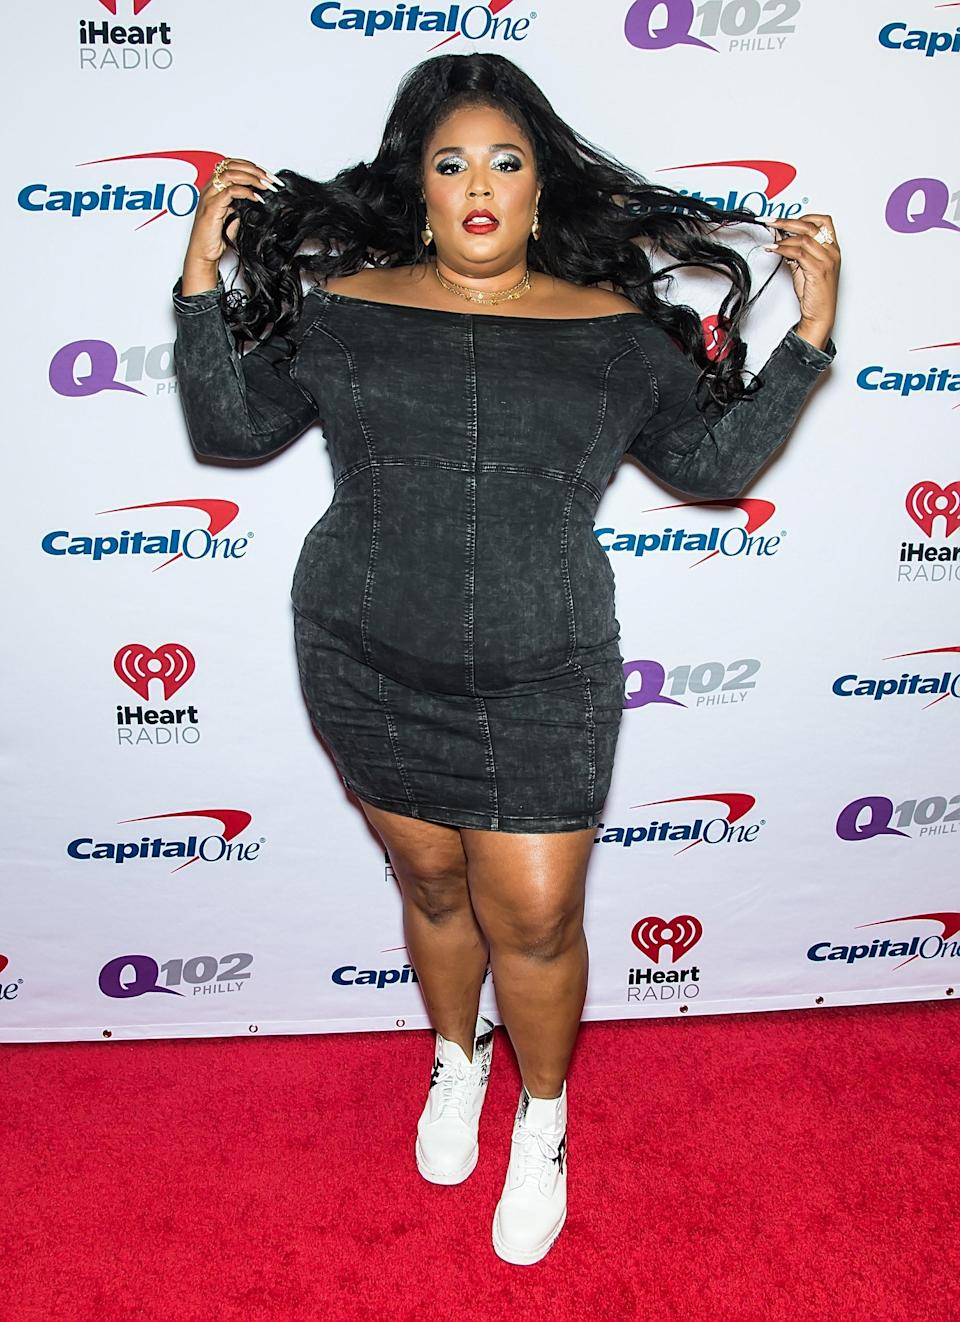 Lizzo also kept it cute and fun at the 2019 Jingle Ball in a dark denim mini-dress. Why wear heels when boots are available? (Also, this makeup deserves a standing ovation.)